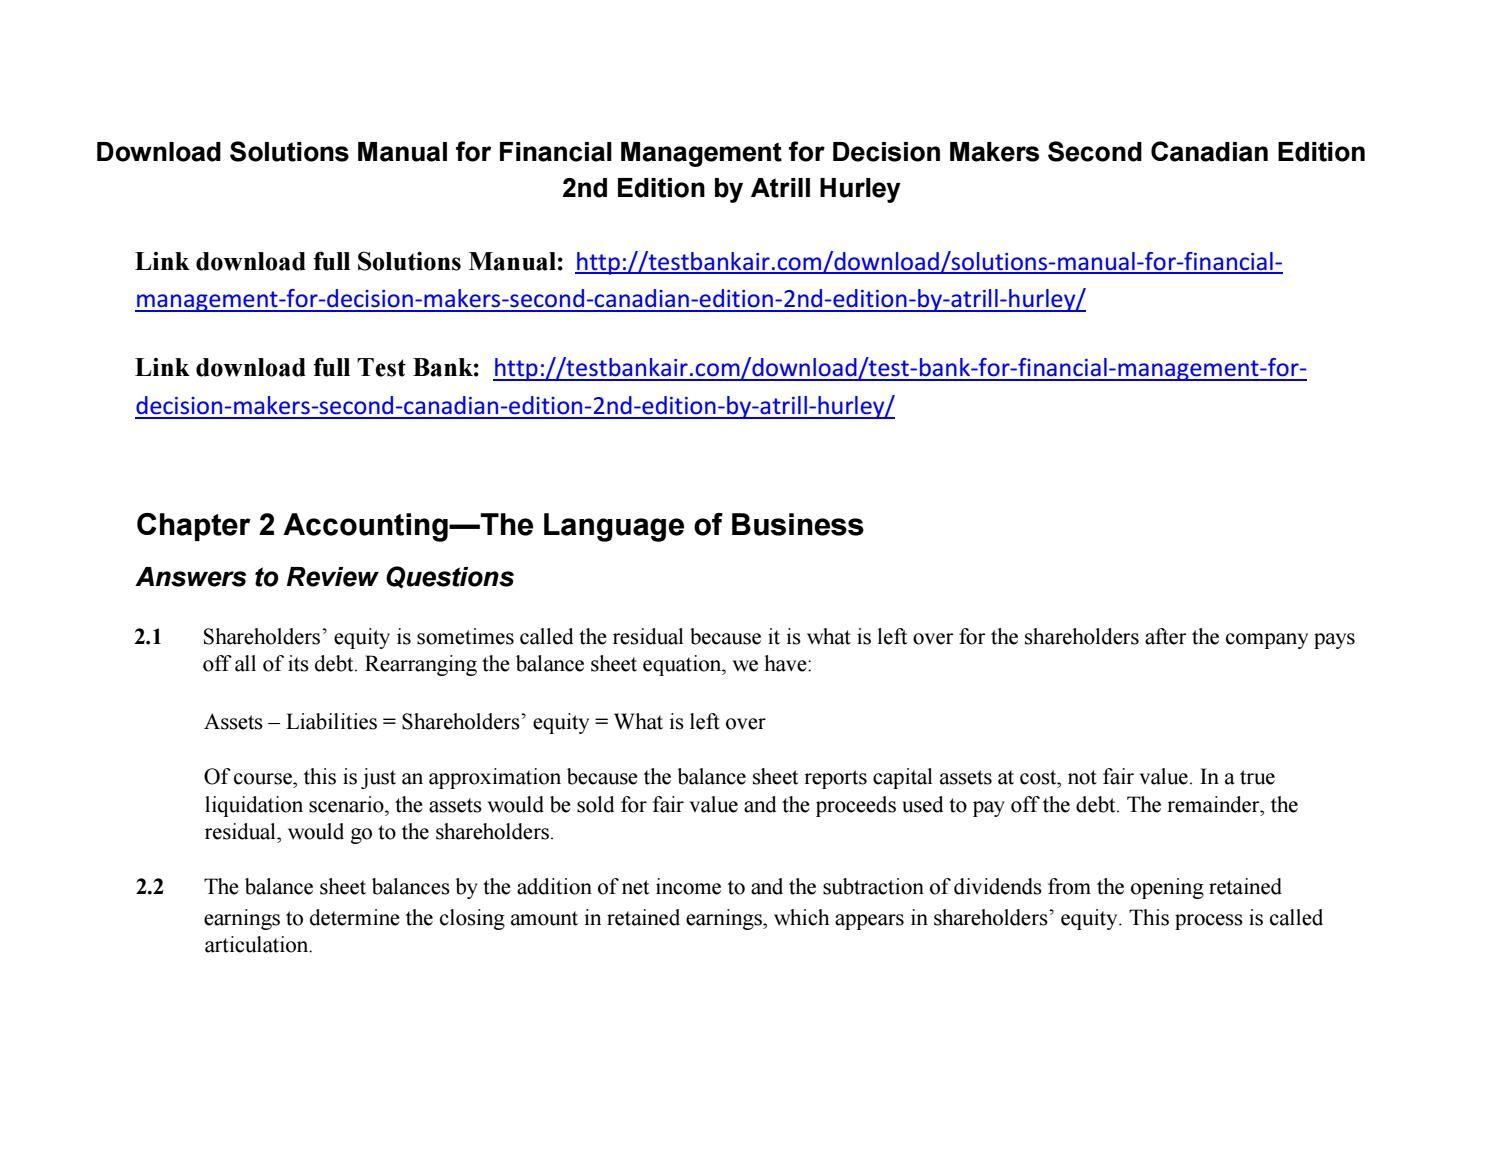 Download Solutions Manual for Financial Management for Decision Makers  Second Canadian Edition 2nd